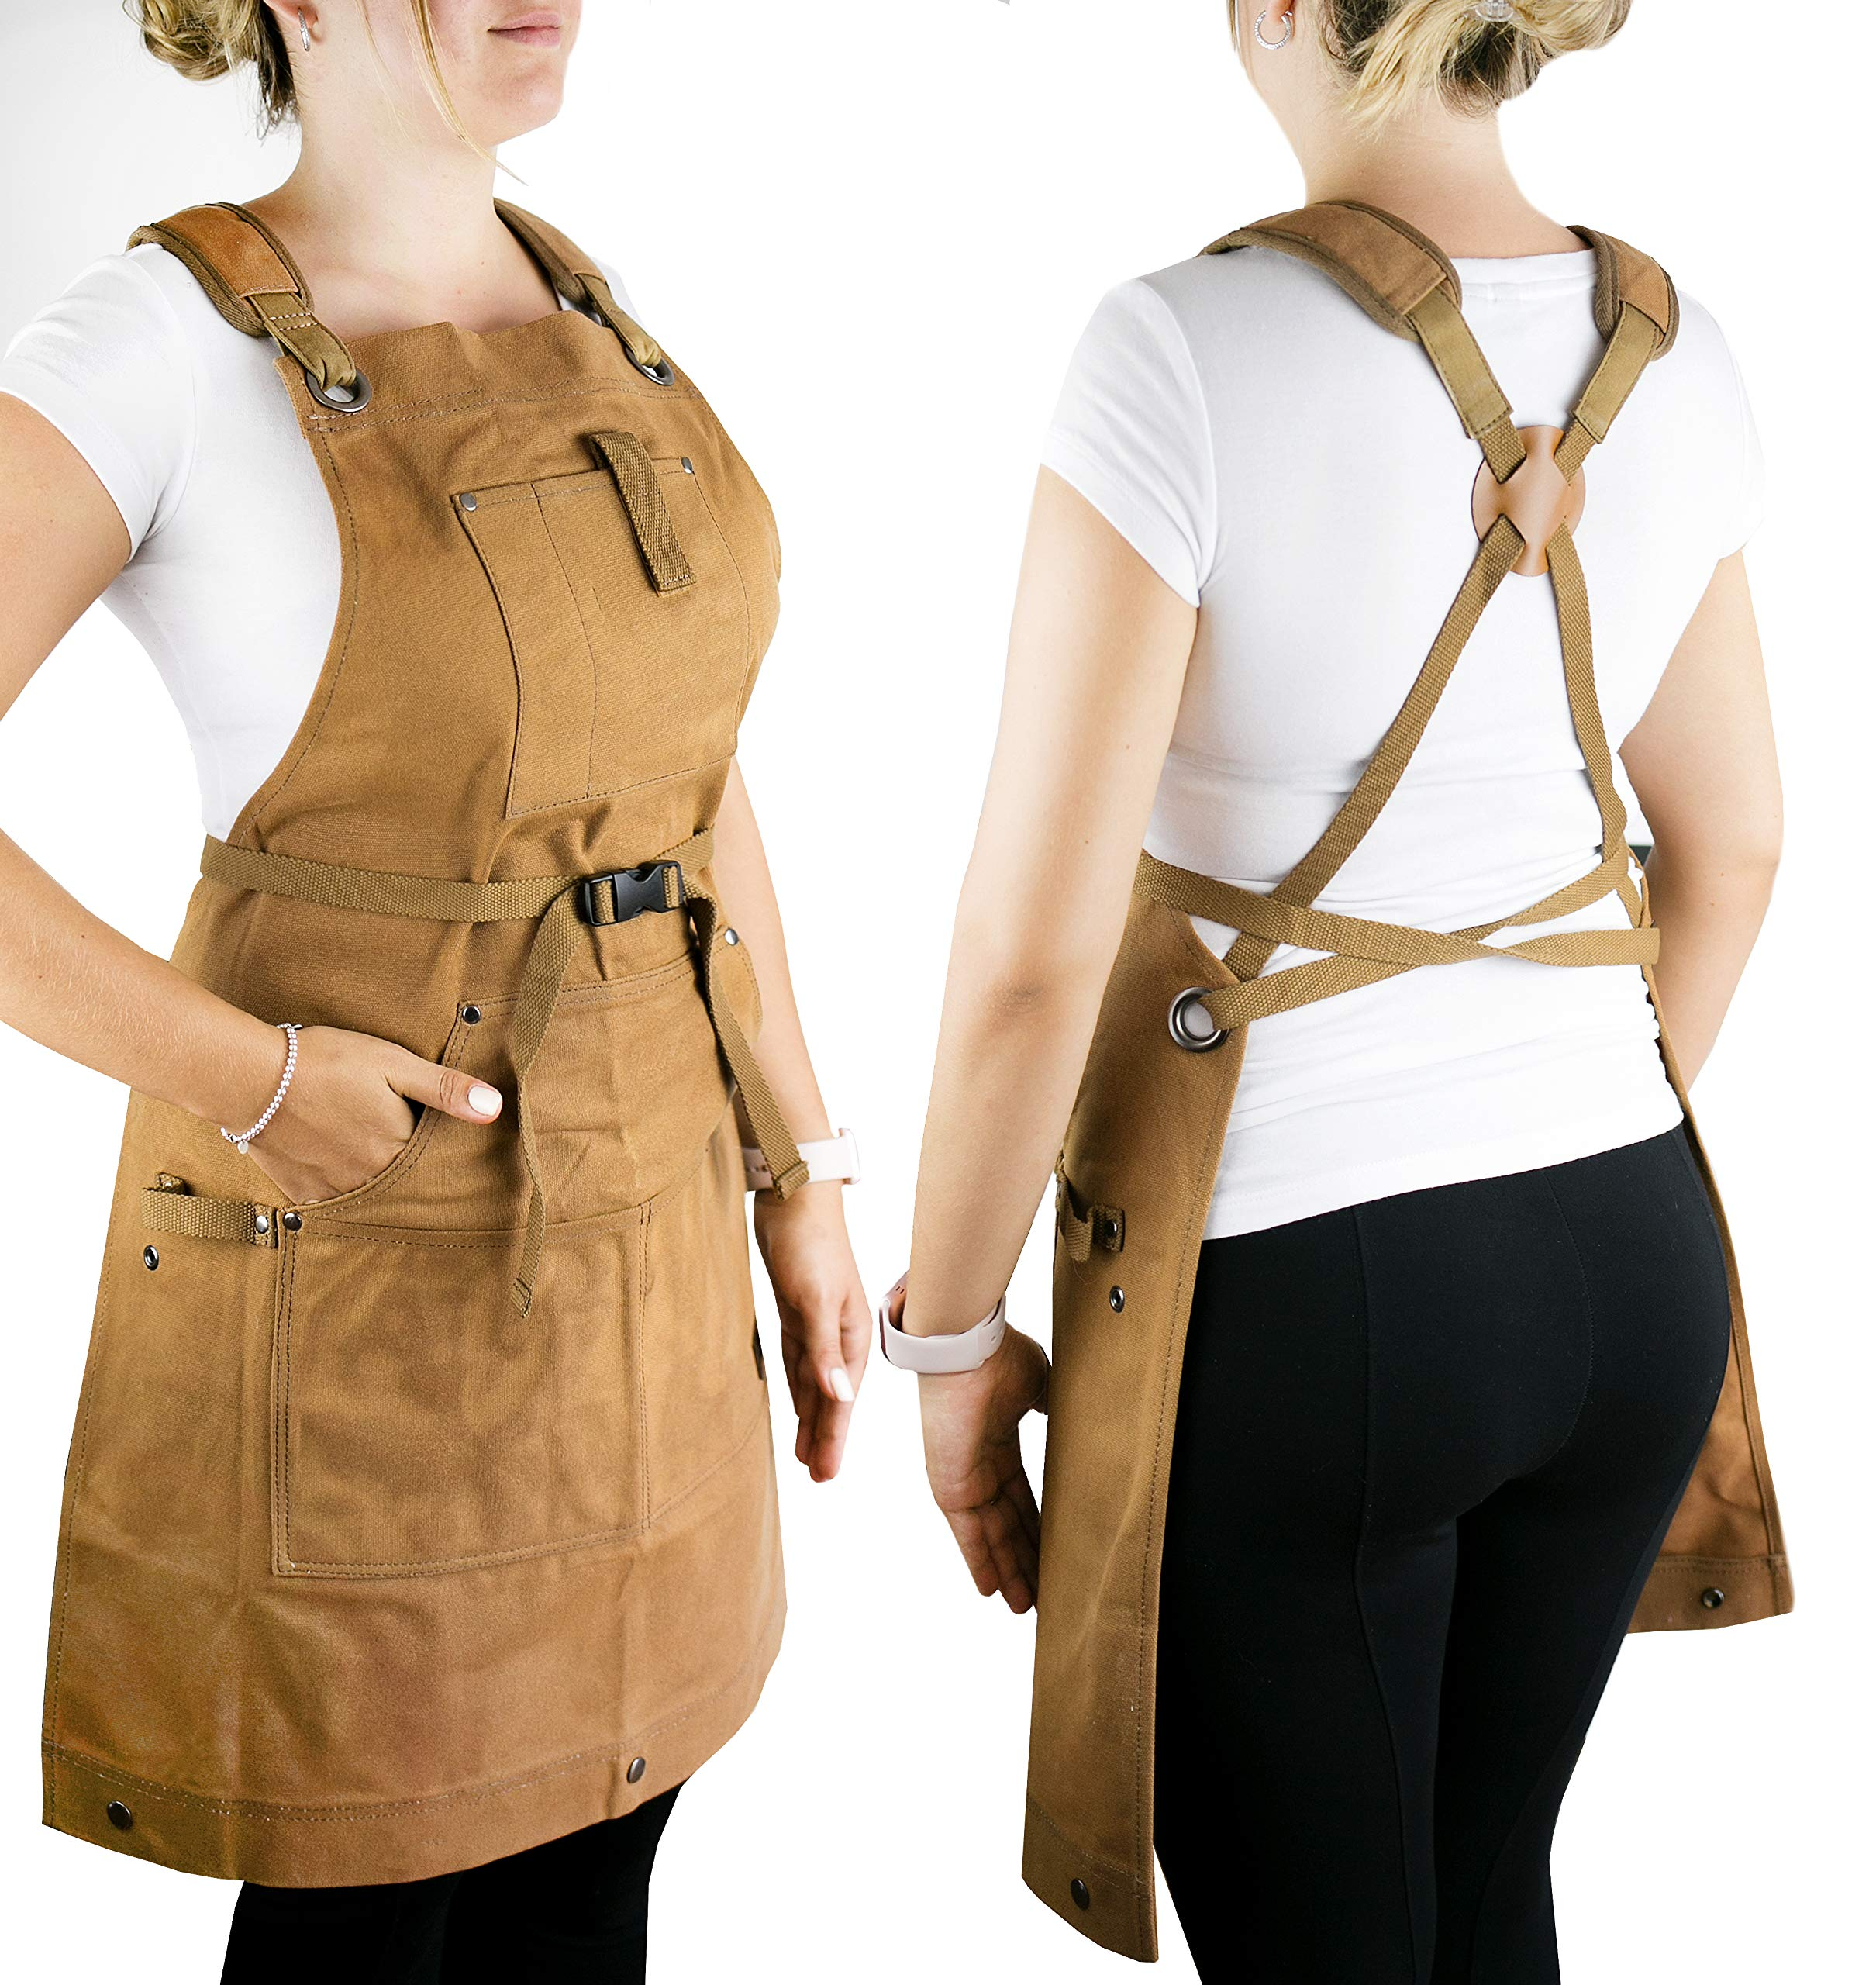 Waterproof Canvas Work Apron for Men and Women, Heavy-Duty Waxed for Durability and Safety - Brown by NomadFox (Image #3)